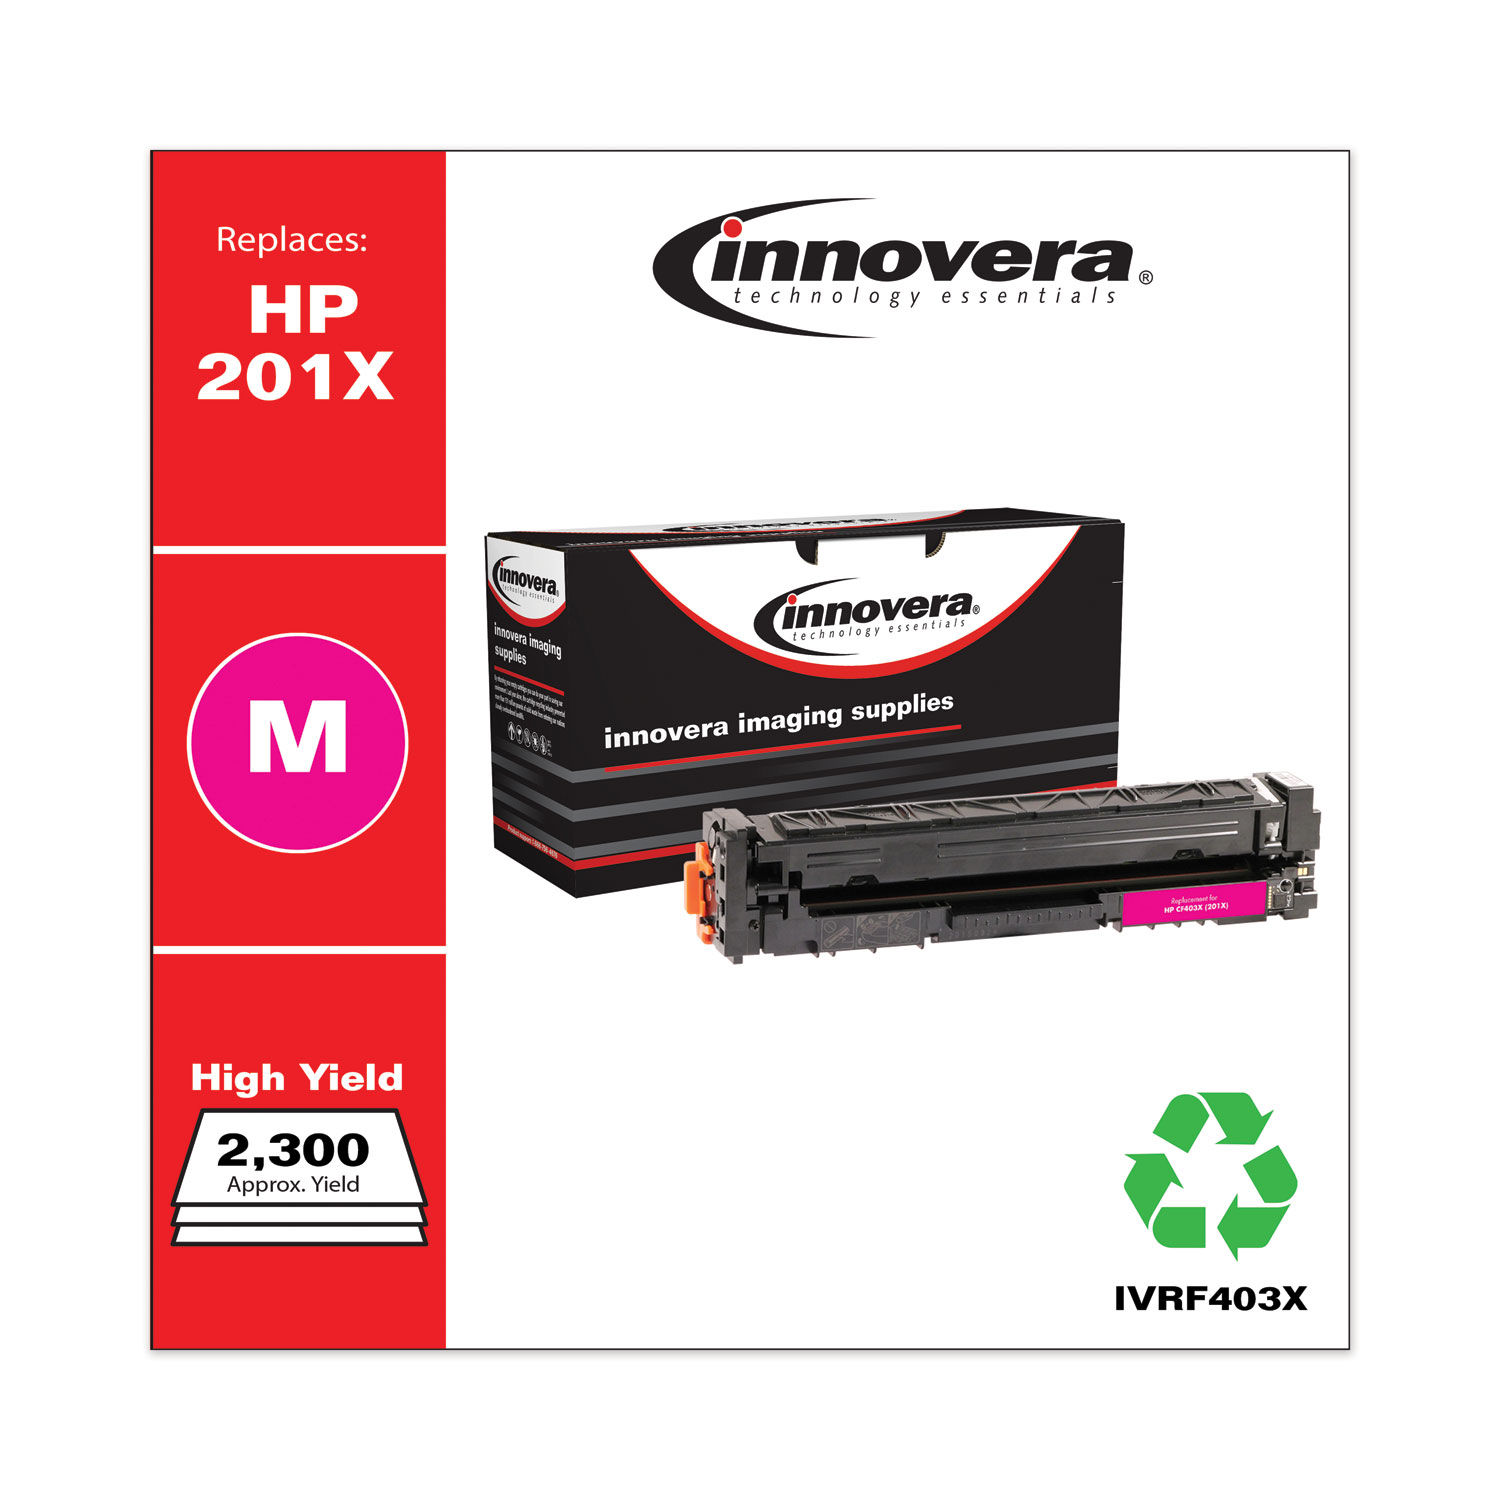 Equivalent to HP C8543X SuppliesMAX Compatible Replacement for Innovera IVR83543TMICR Toner Cartridge 30000 Page Yield Troy 02-81081-001